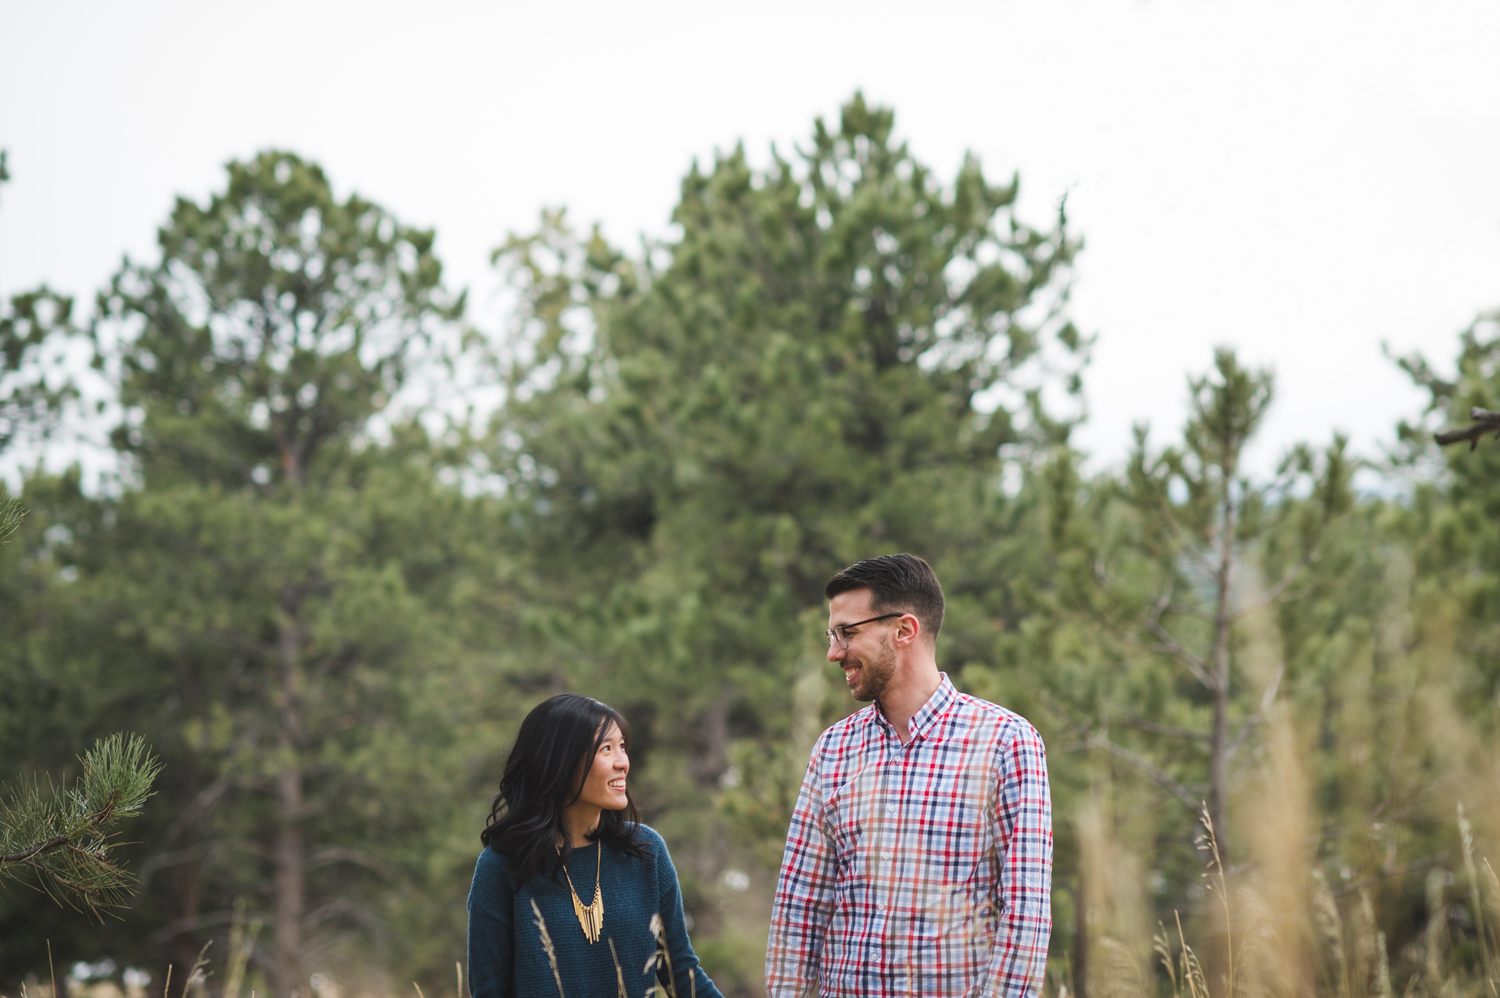 TiffanyandMark_Engaged_0142_squarespace.jpg